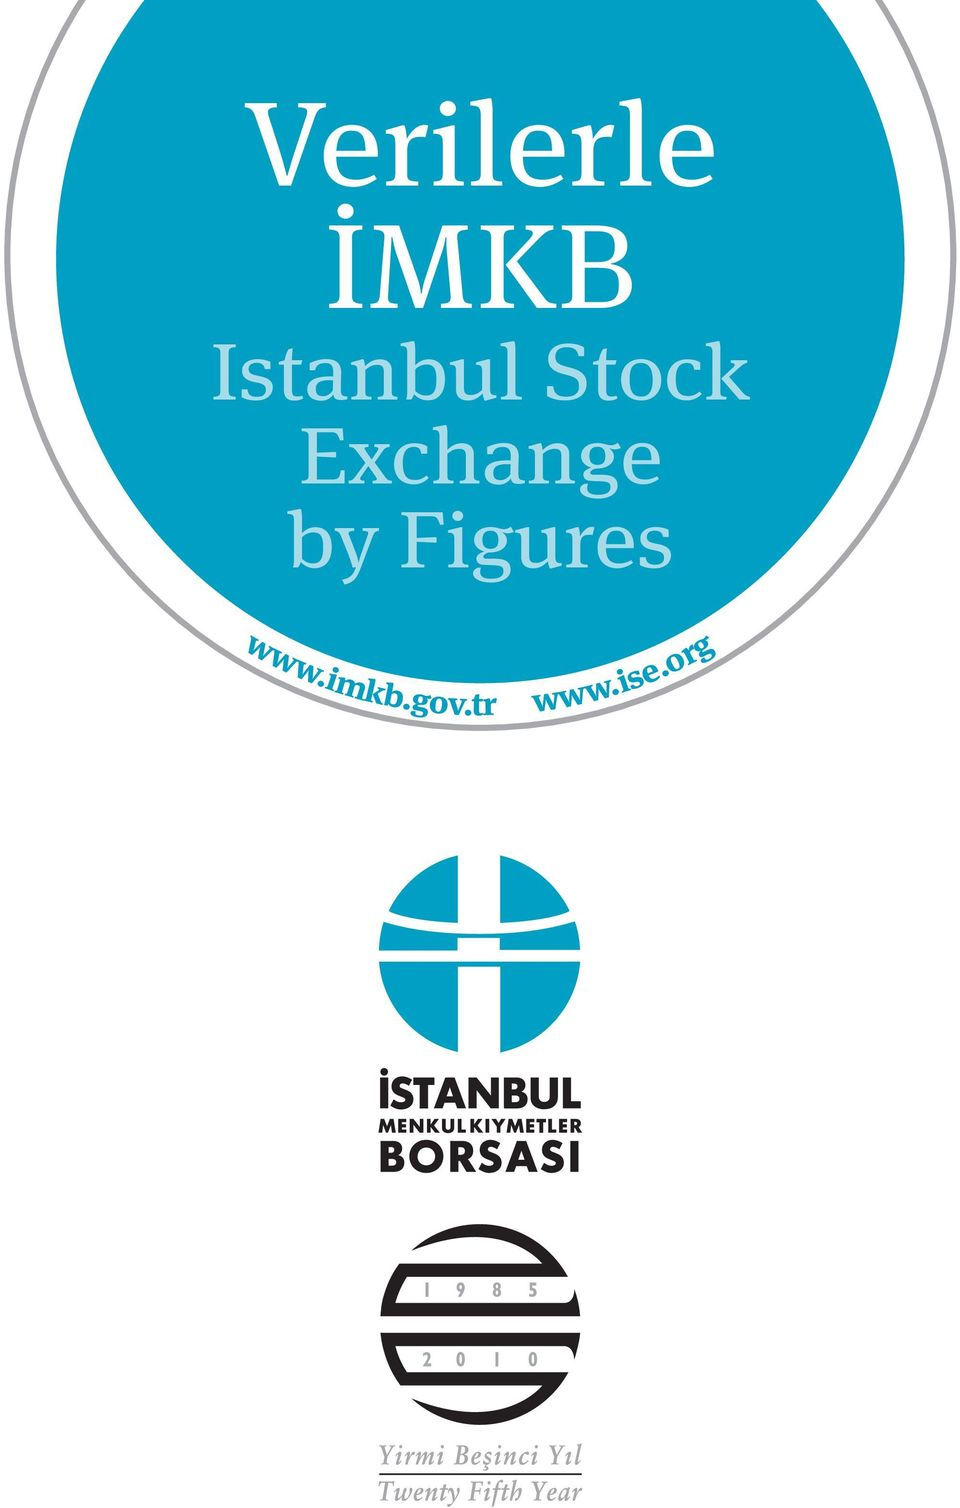 Exchange by Figures